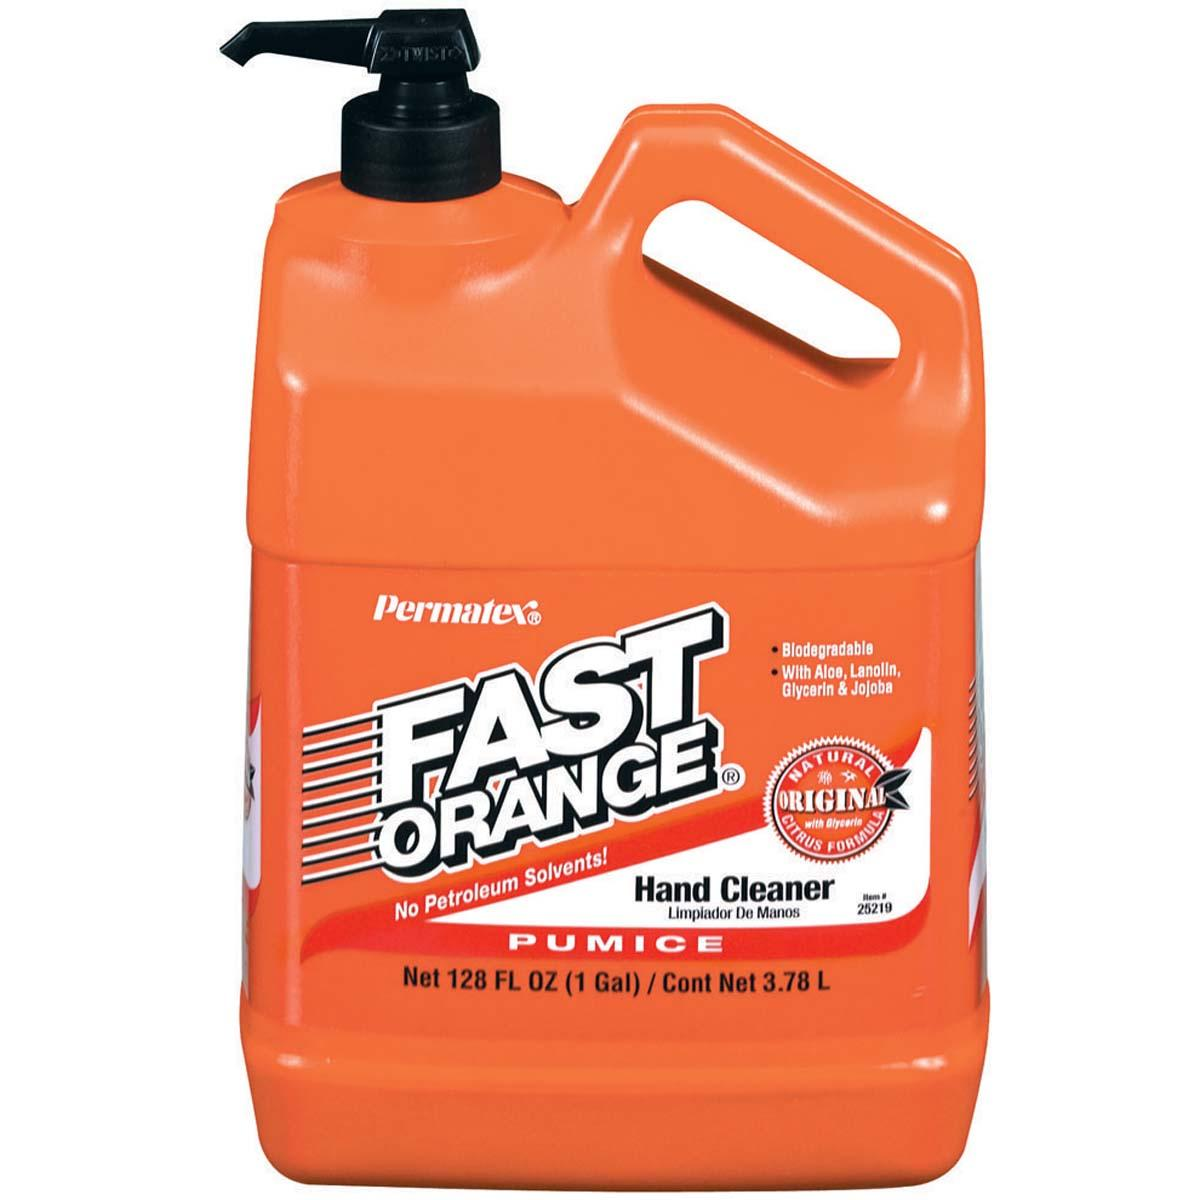 PERMATEX® FAST ORANGE®  Hand Cleaner (Pumice Lotion) - 1 gal. plastic bottle with pump  1 Each